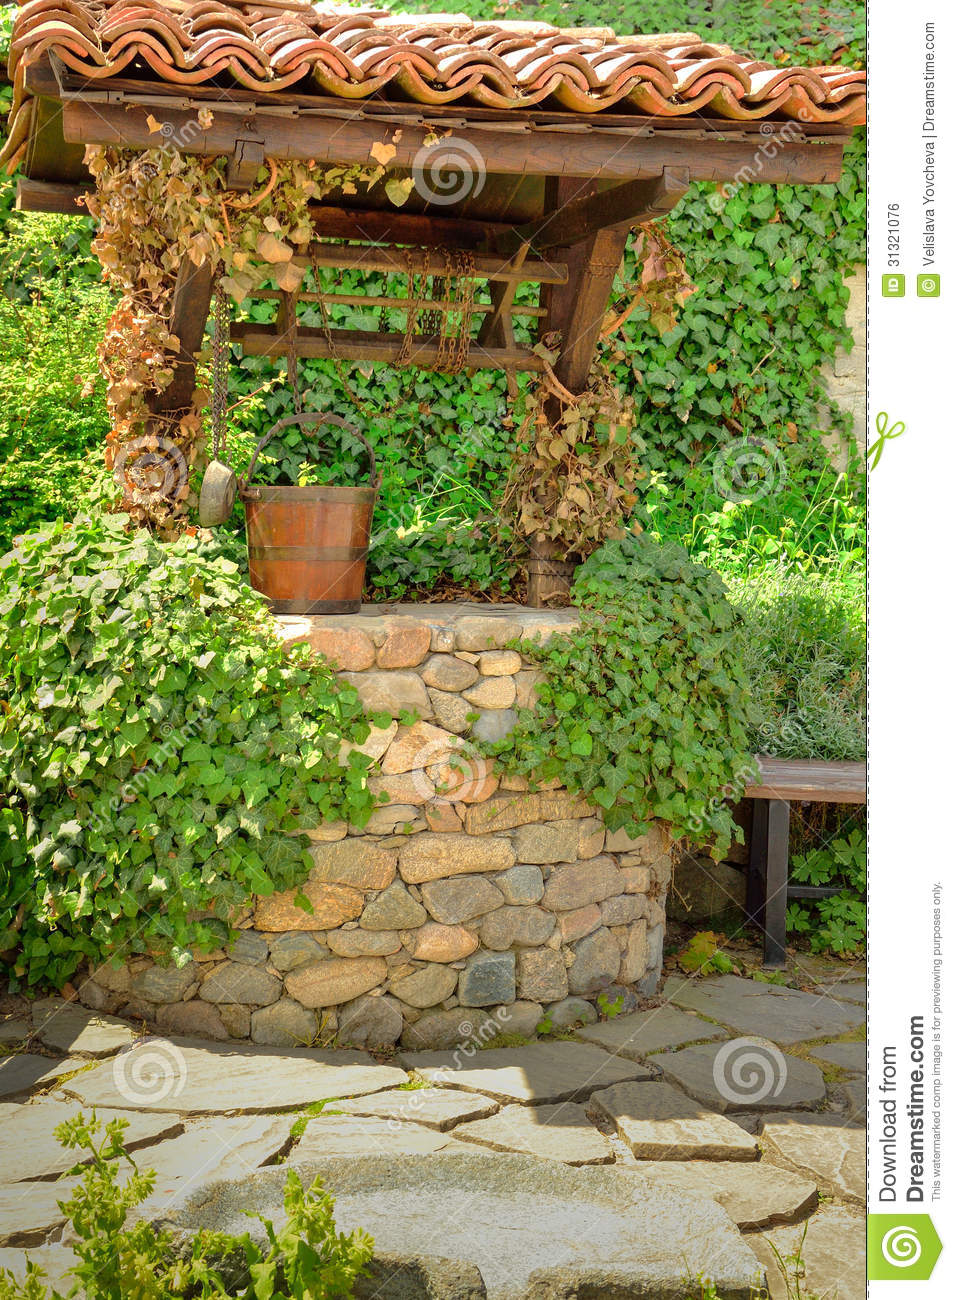 Old Wishing Well Among Ivy Leaves Royalty Free Stock Image ...